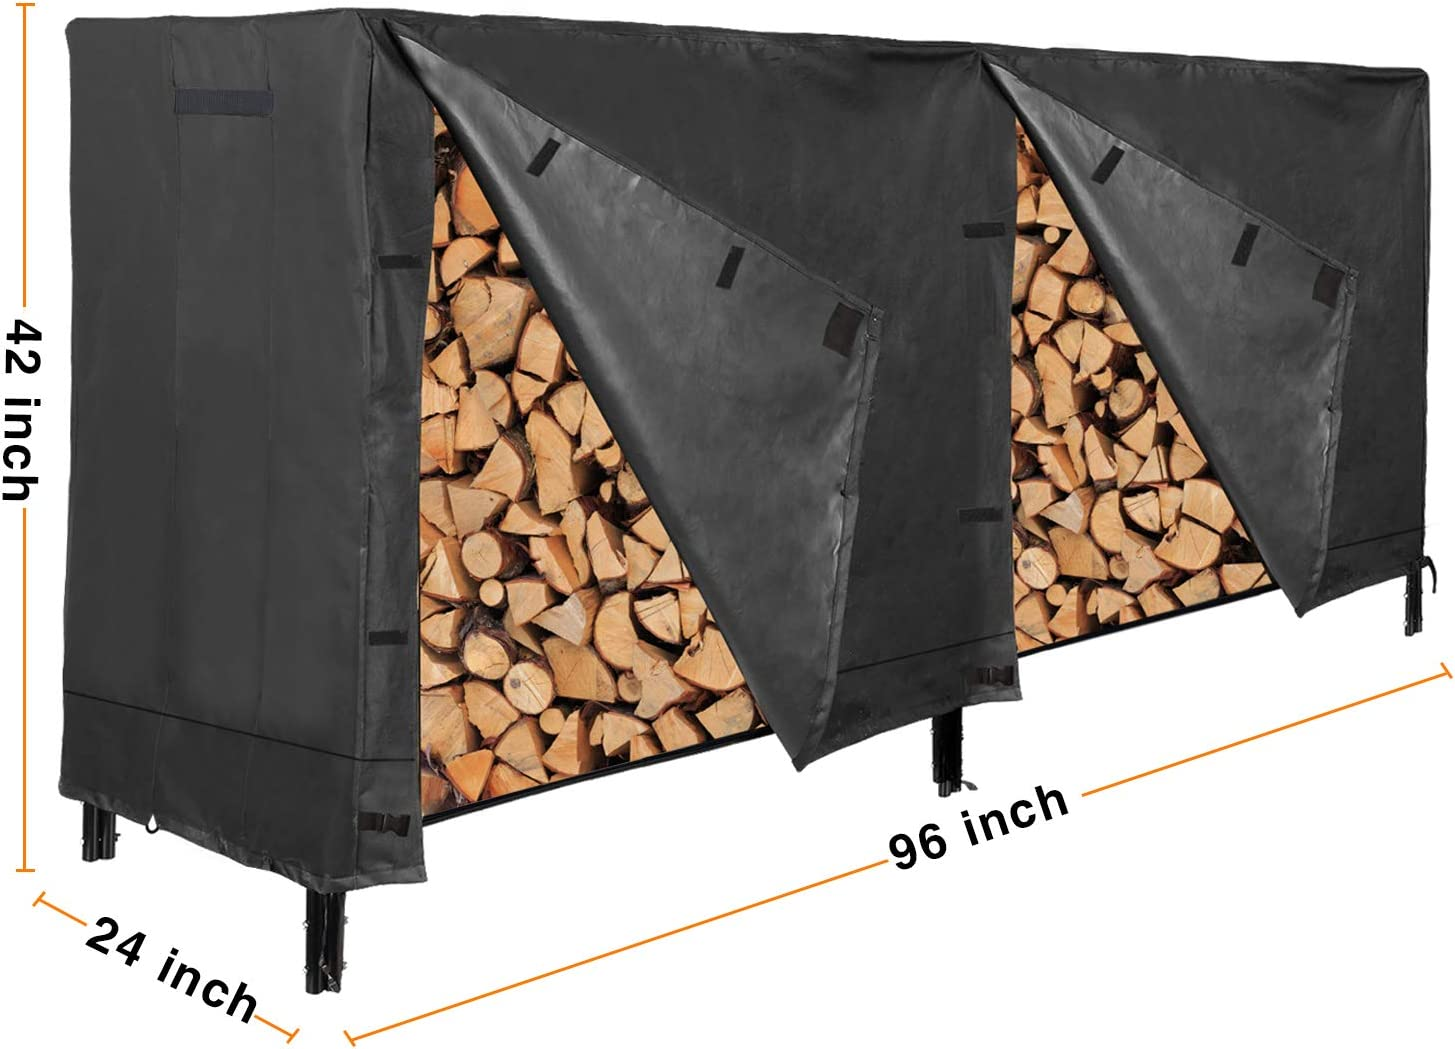 Black CAMPMOON 8FT Firewood Covers Waterproof Durable Oxford Heavy Duty Outdoor Log Rack Cover